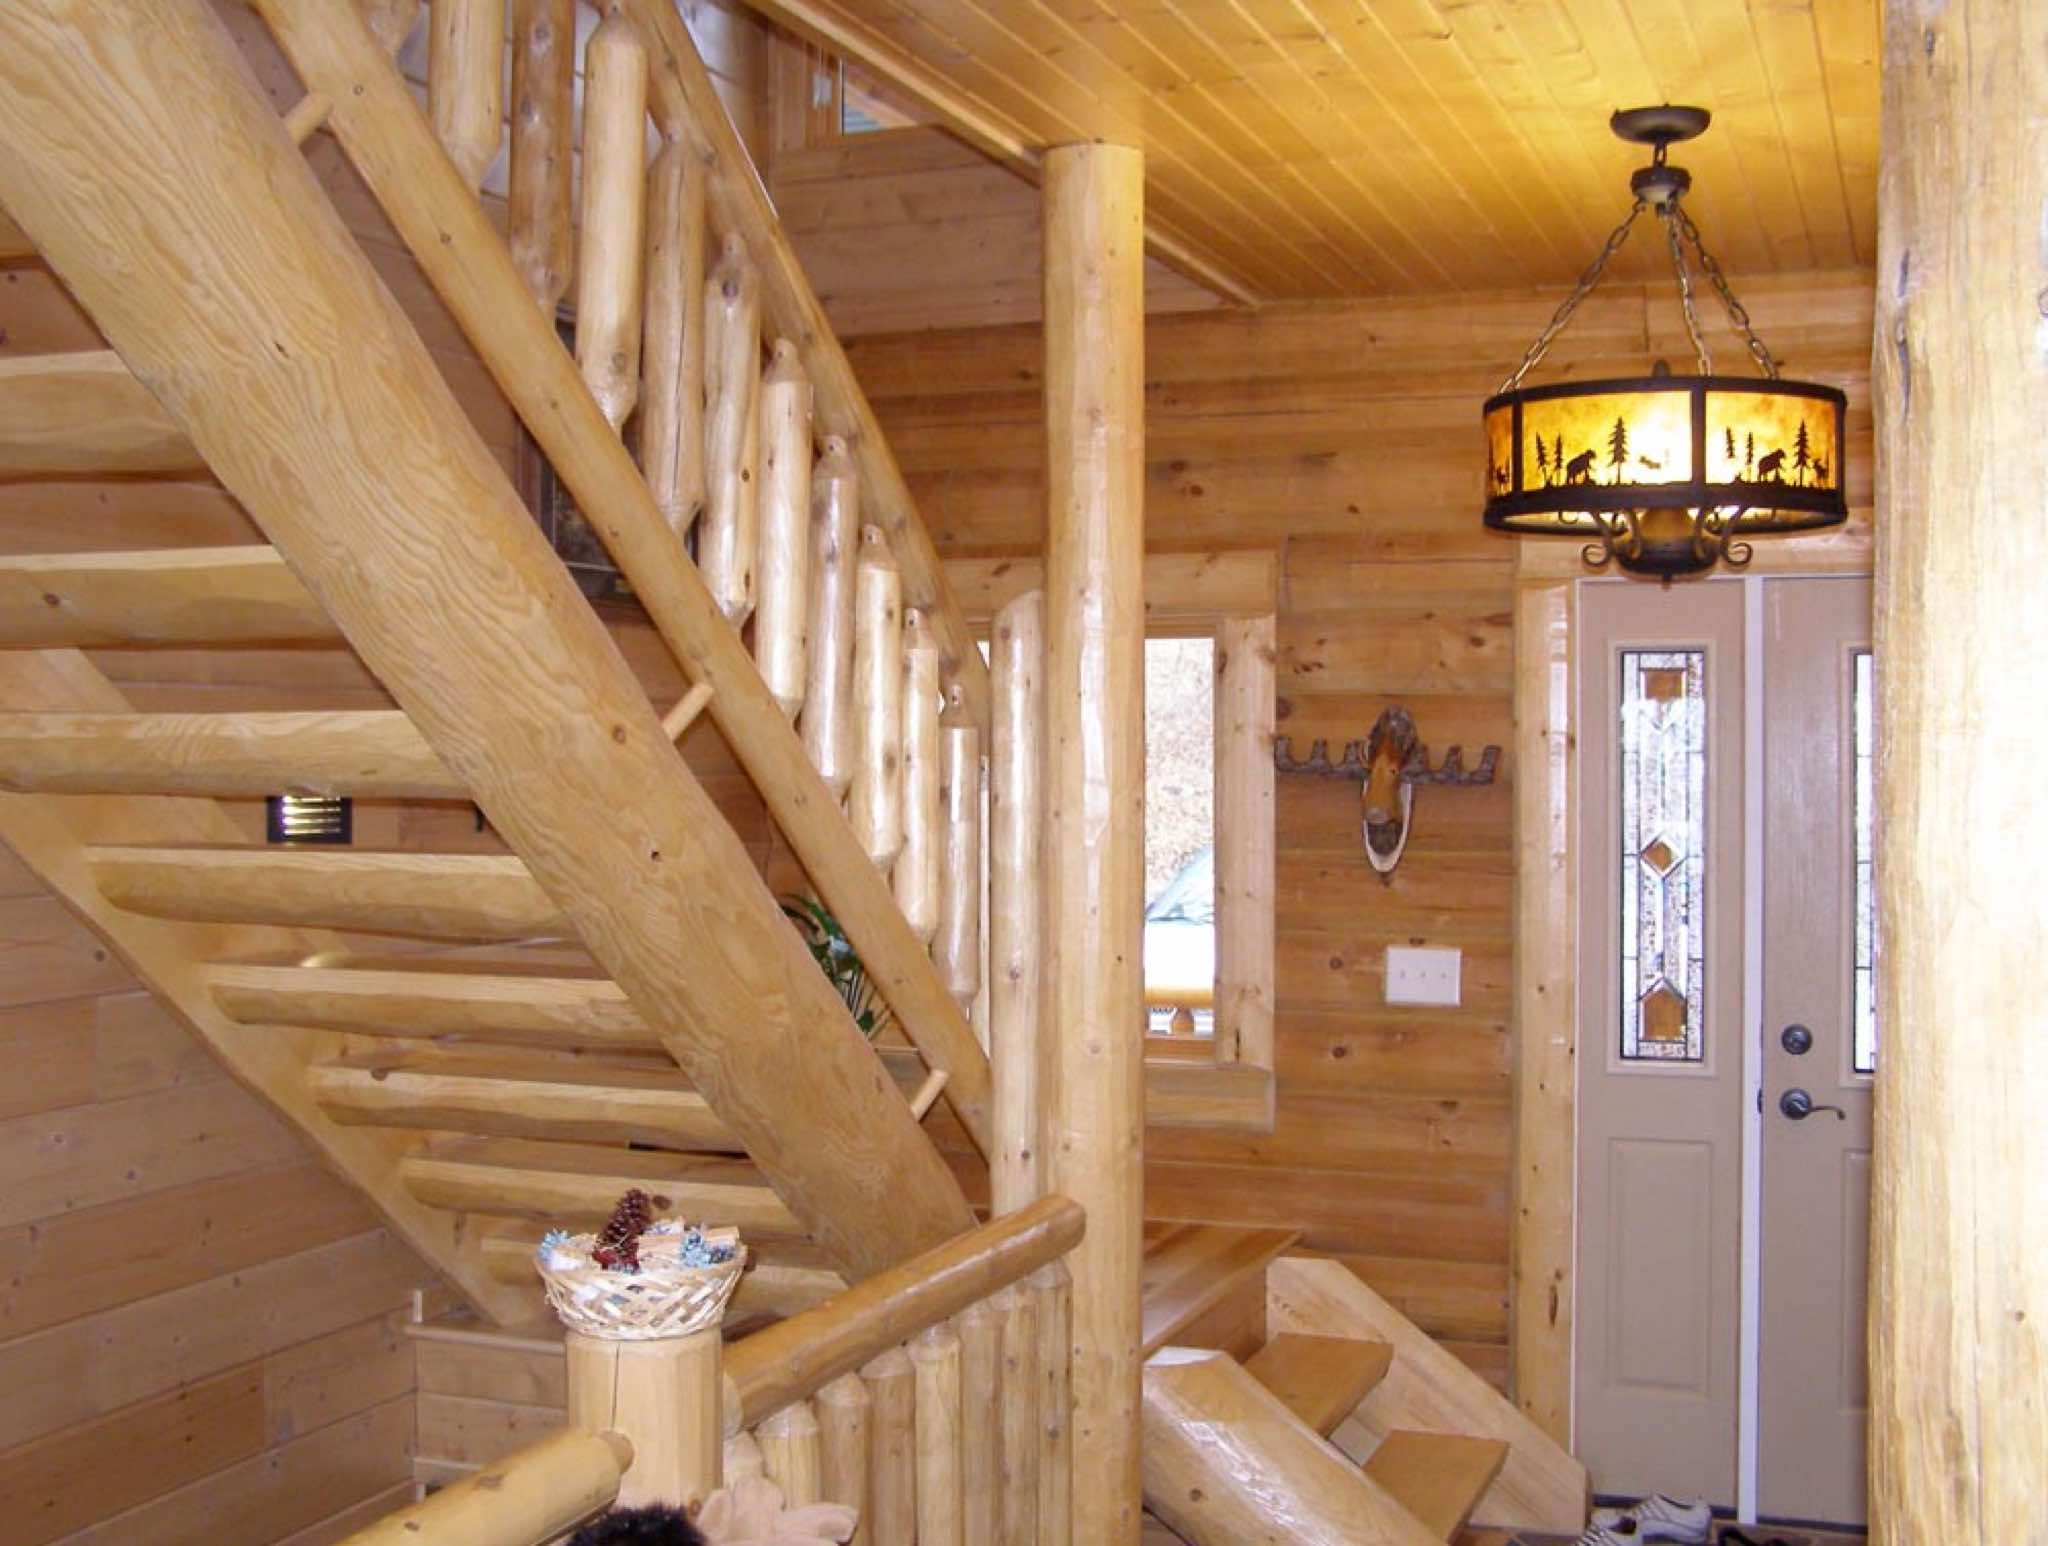 Superb Log Railings And Stairs Are Great For That One Of A Kind Look That You Can  Only Get With Log.